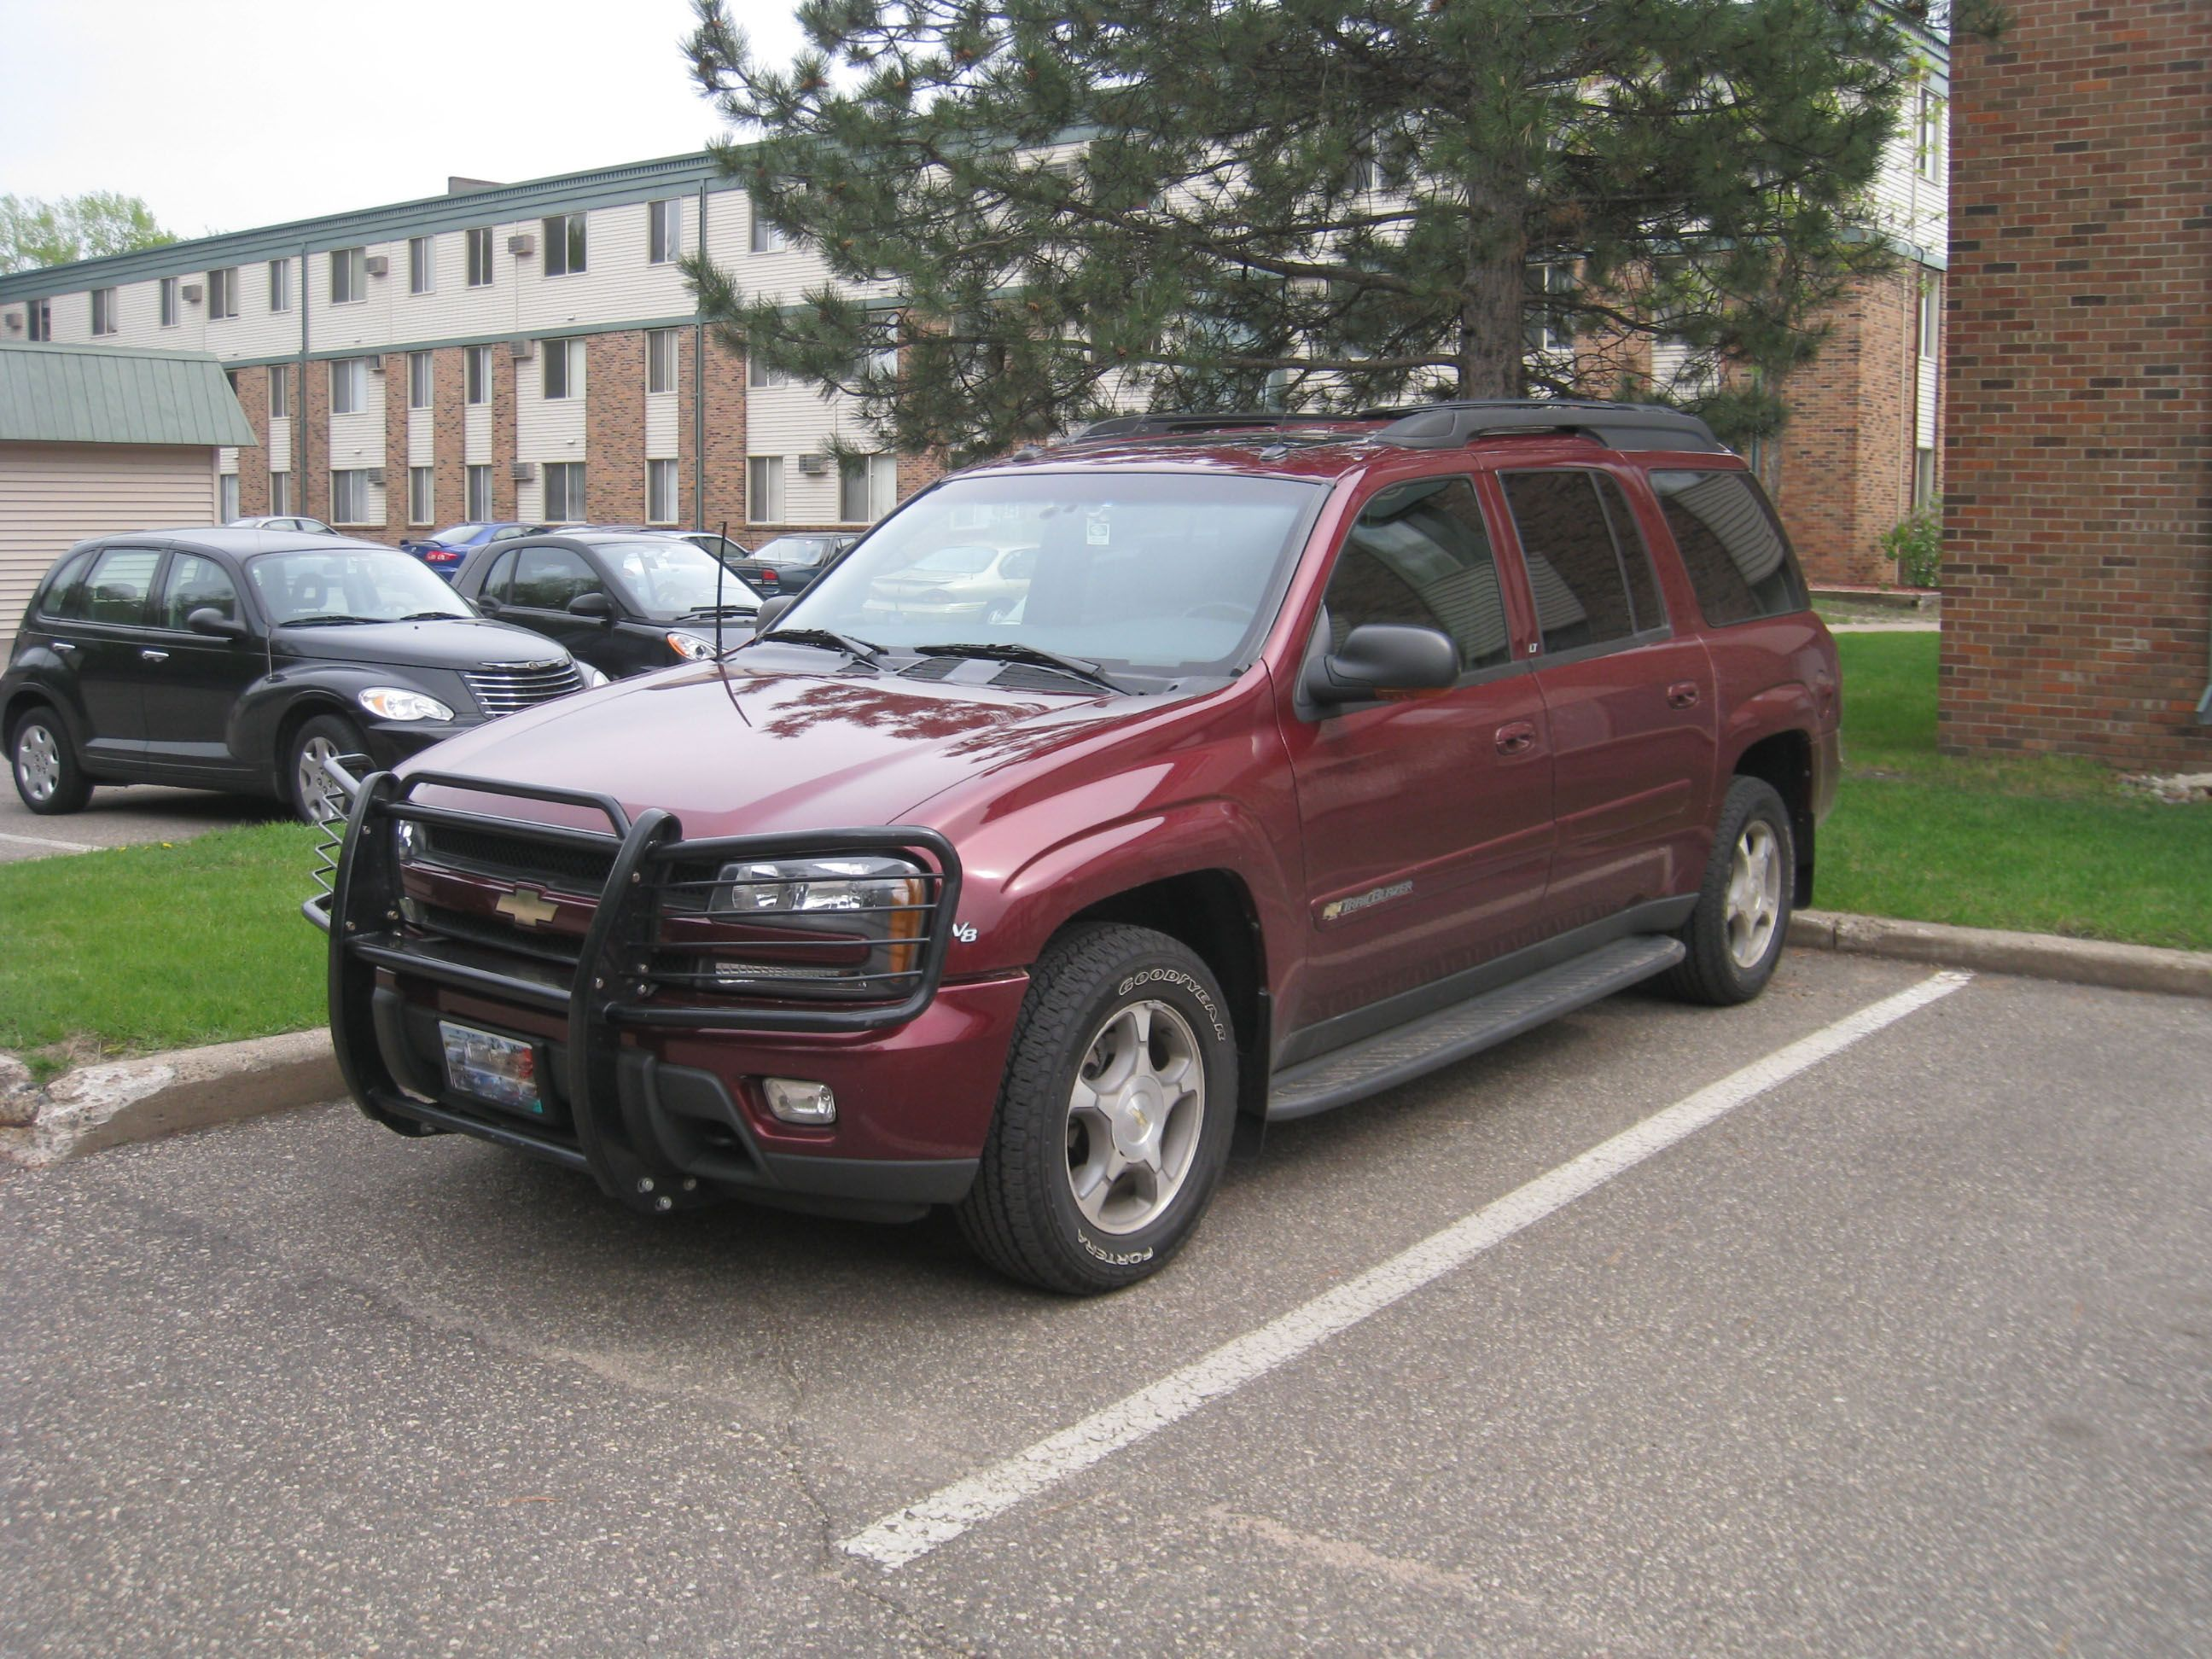 Chevy Trailblazer With Rhino Front Grille Guard Chevy